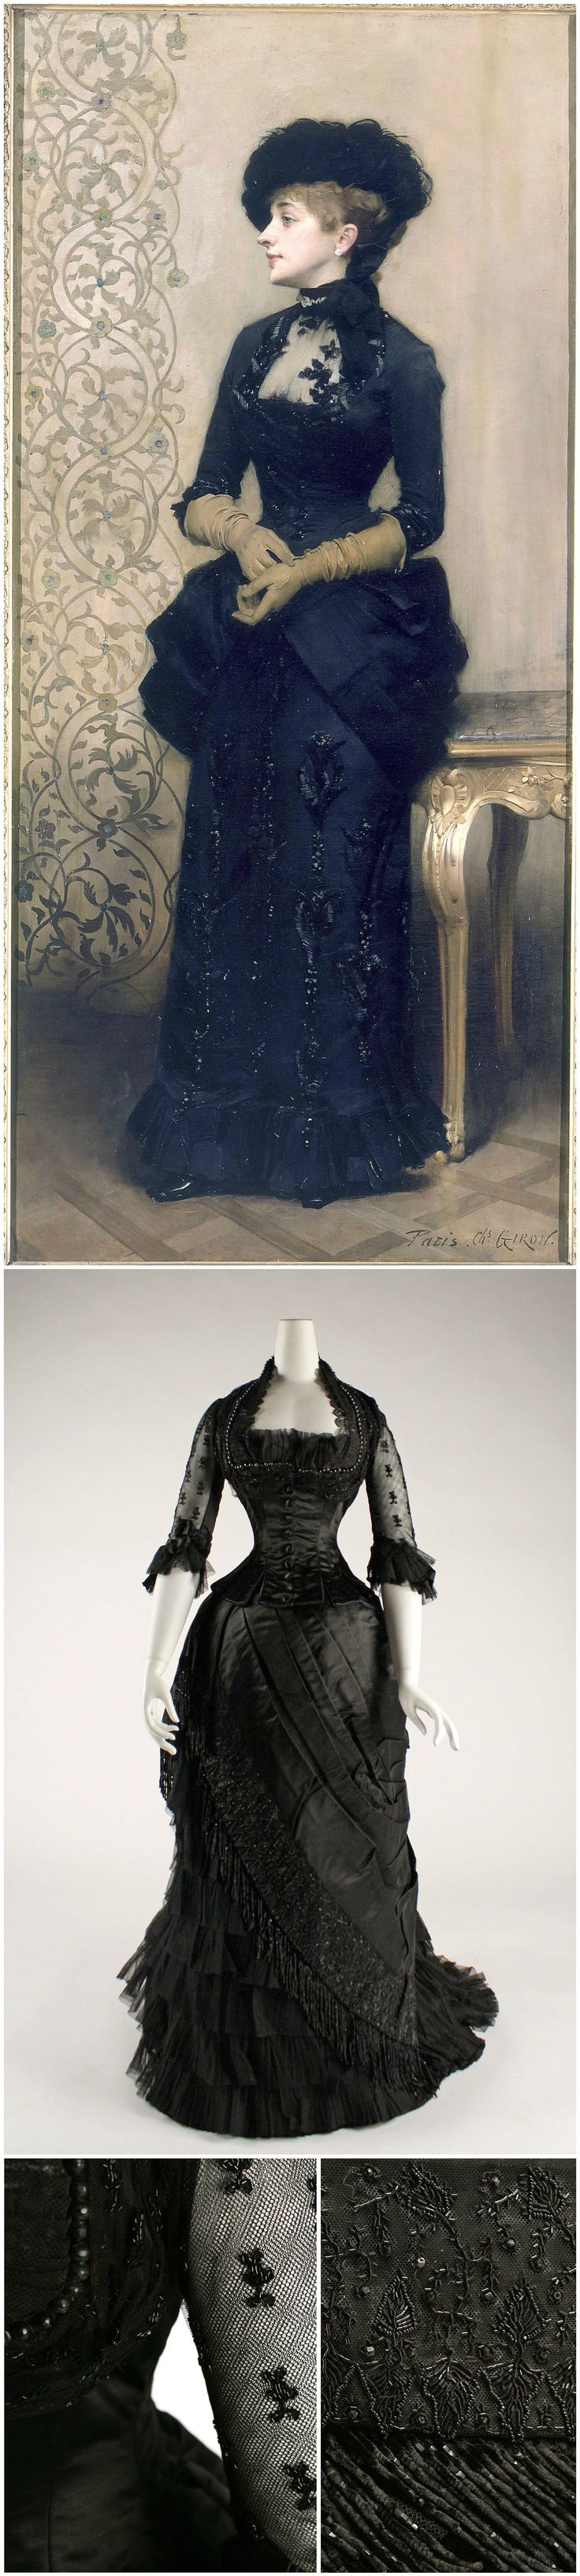 """Evening dress, American or European, 1881-84, silk, collection of the Metropolitan Museum of Art. """"Woman wearing gloves,"""" also known as """"The Parisienne,"""" by Charles-Alexandre Giron, 1883, oil on canvas, 200 x 91 cm, collection of Petit Palais."""